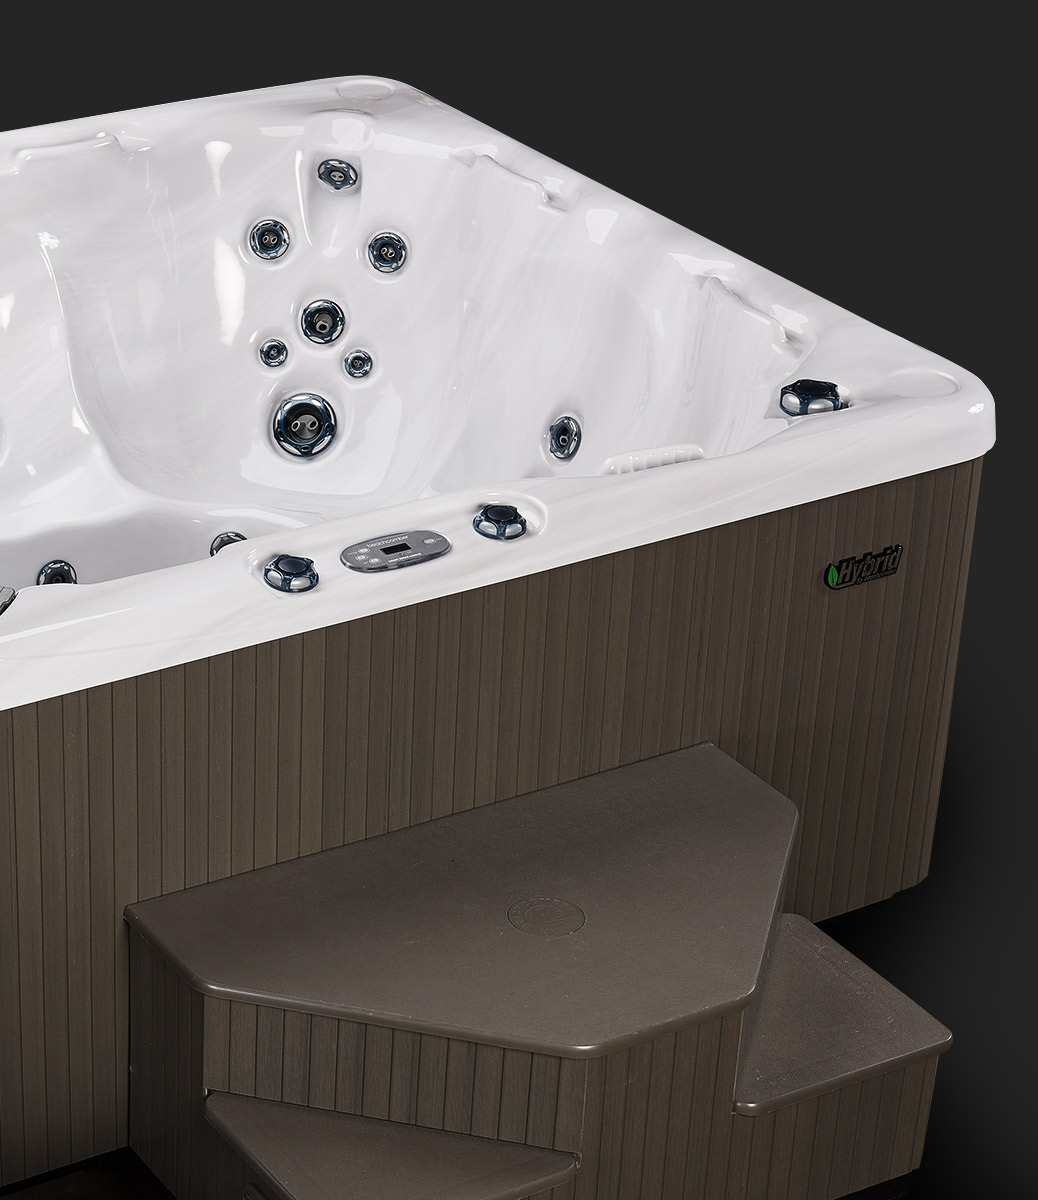 Beachcomber Hot Tubs Modèle 570